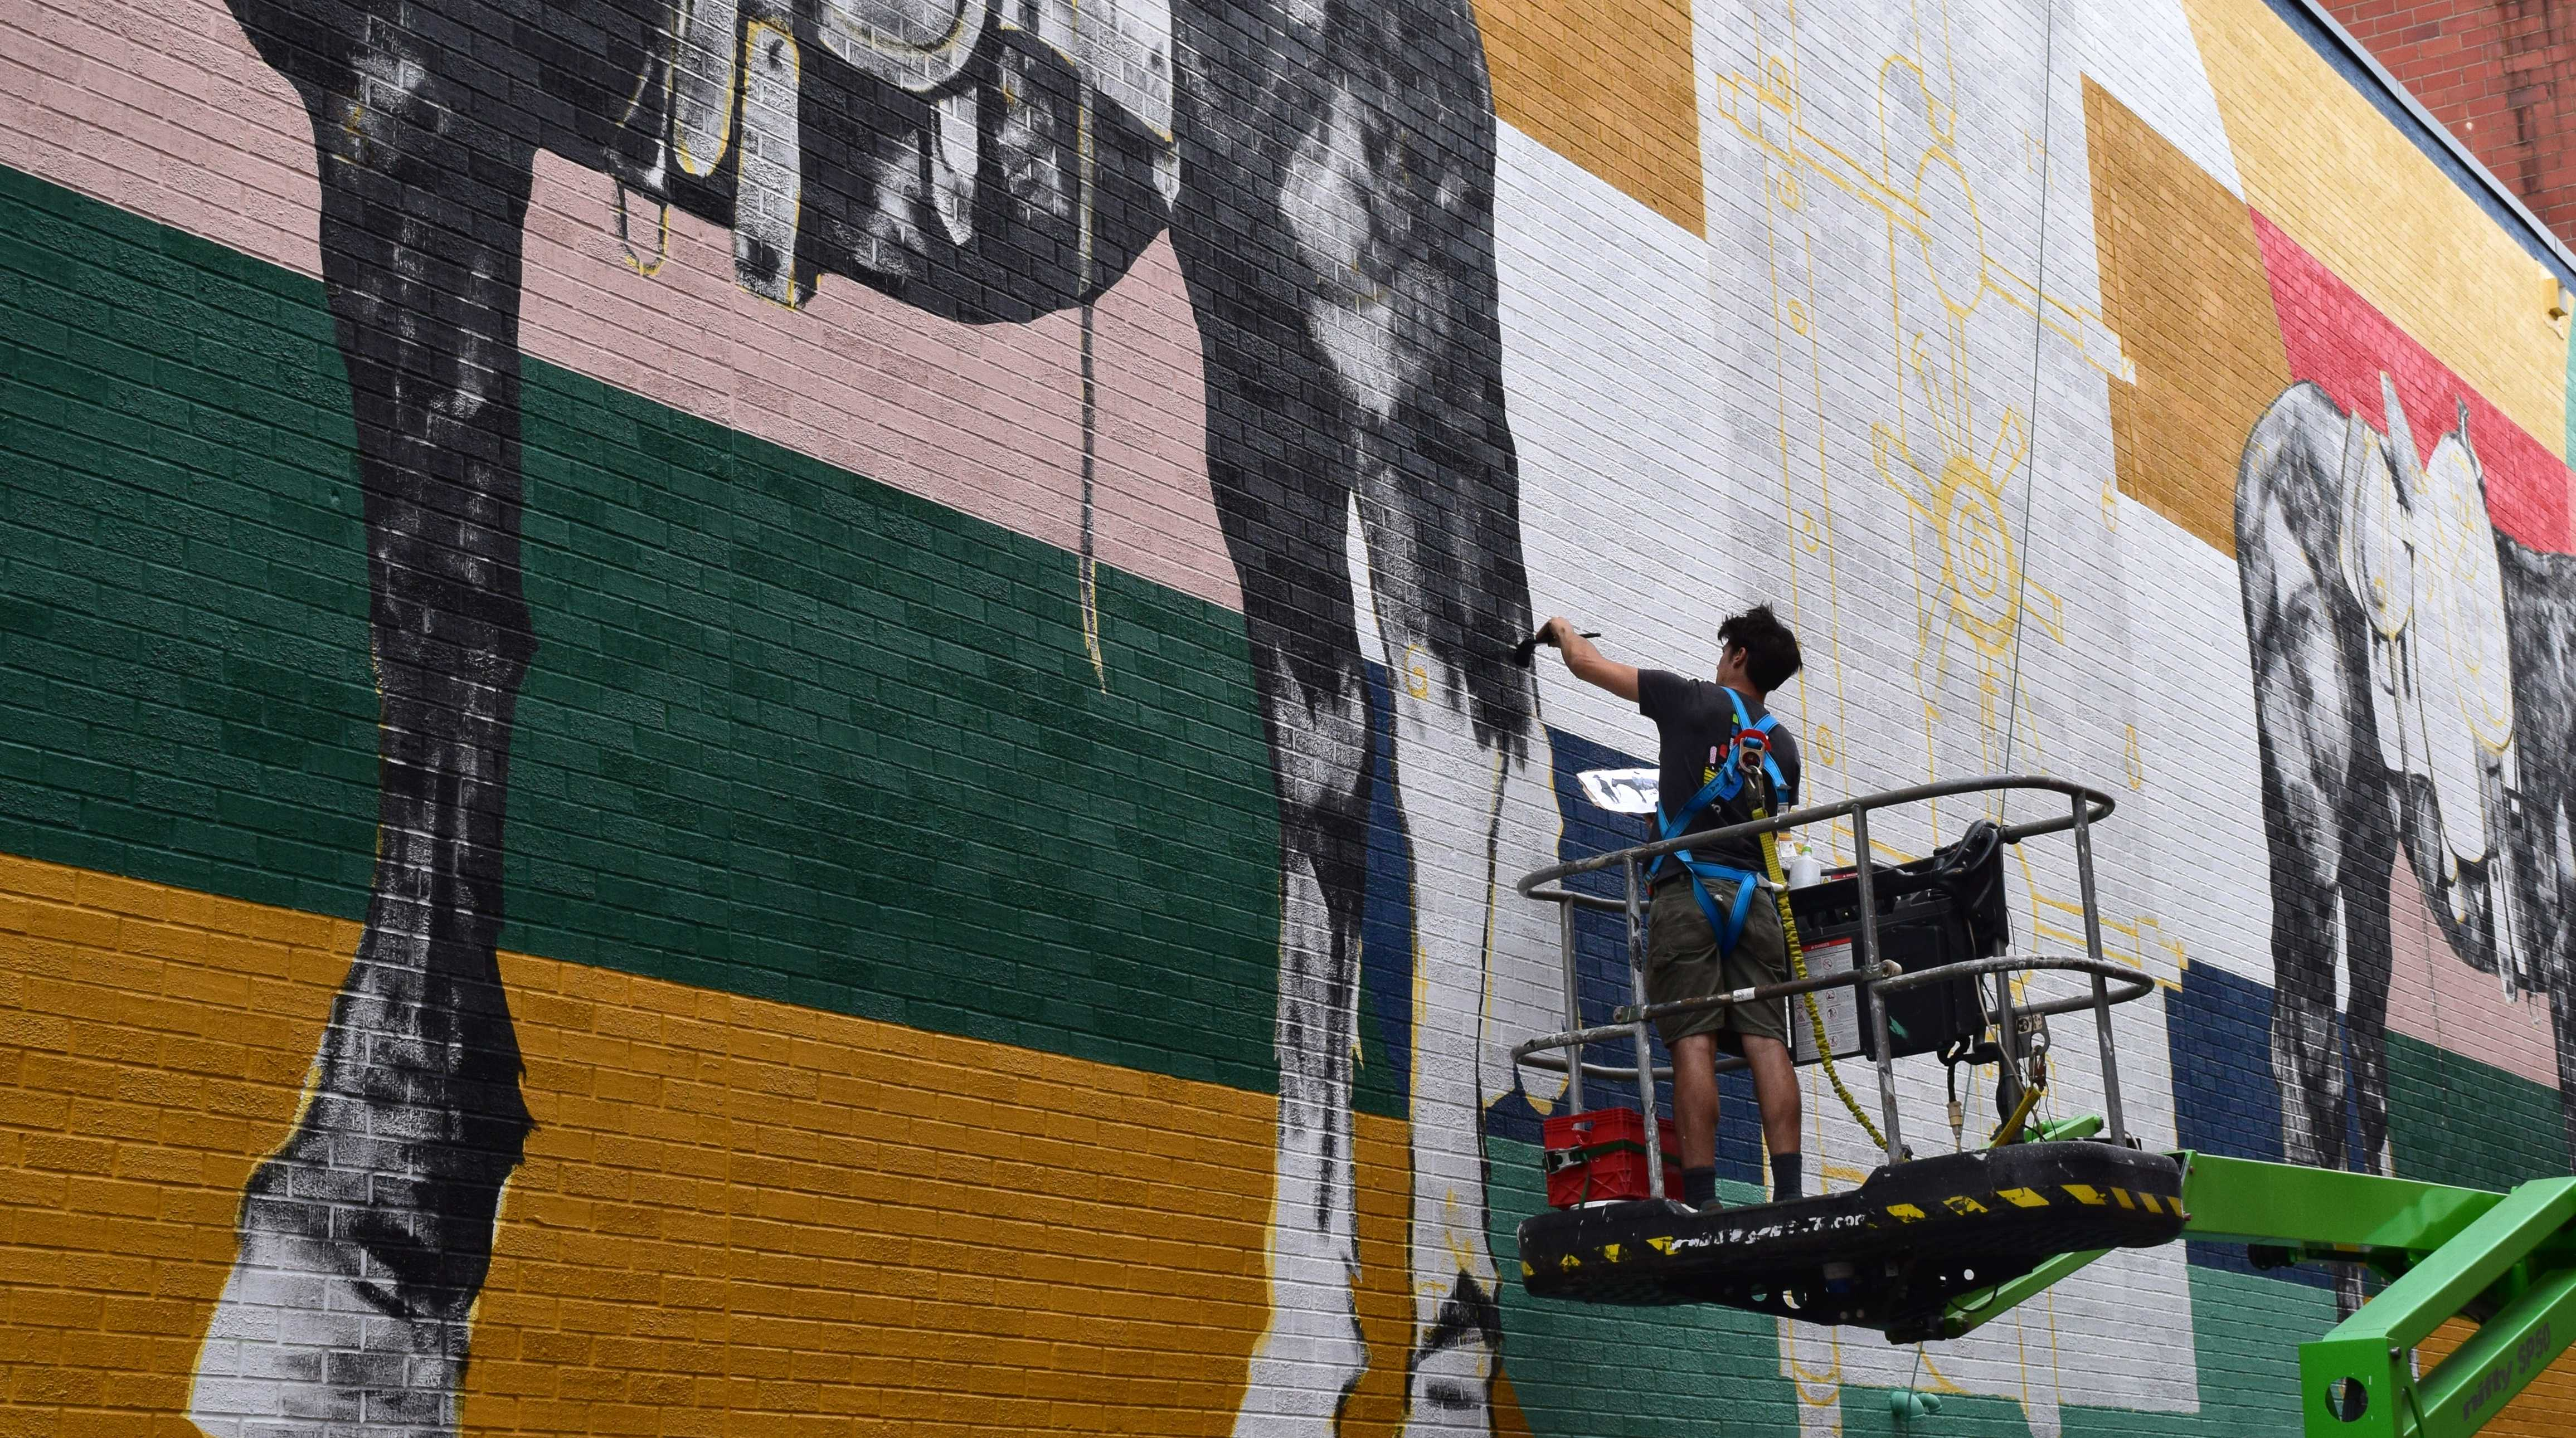 Iowa City-based artist Thomas Agran paints a mural on Wednesday. He has been commissioned by MidWestOne Bank to complete the mural in its alley. (Hayley Anderson/The Daily Iowan)